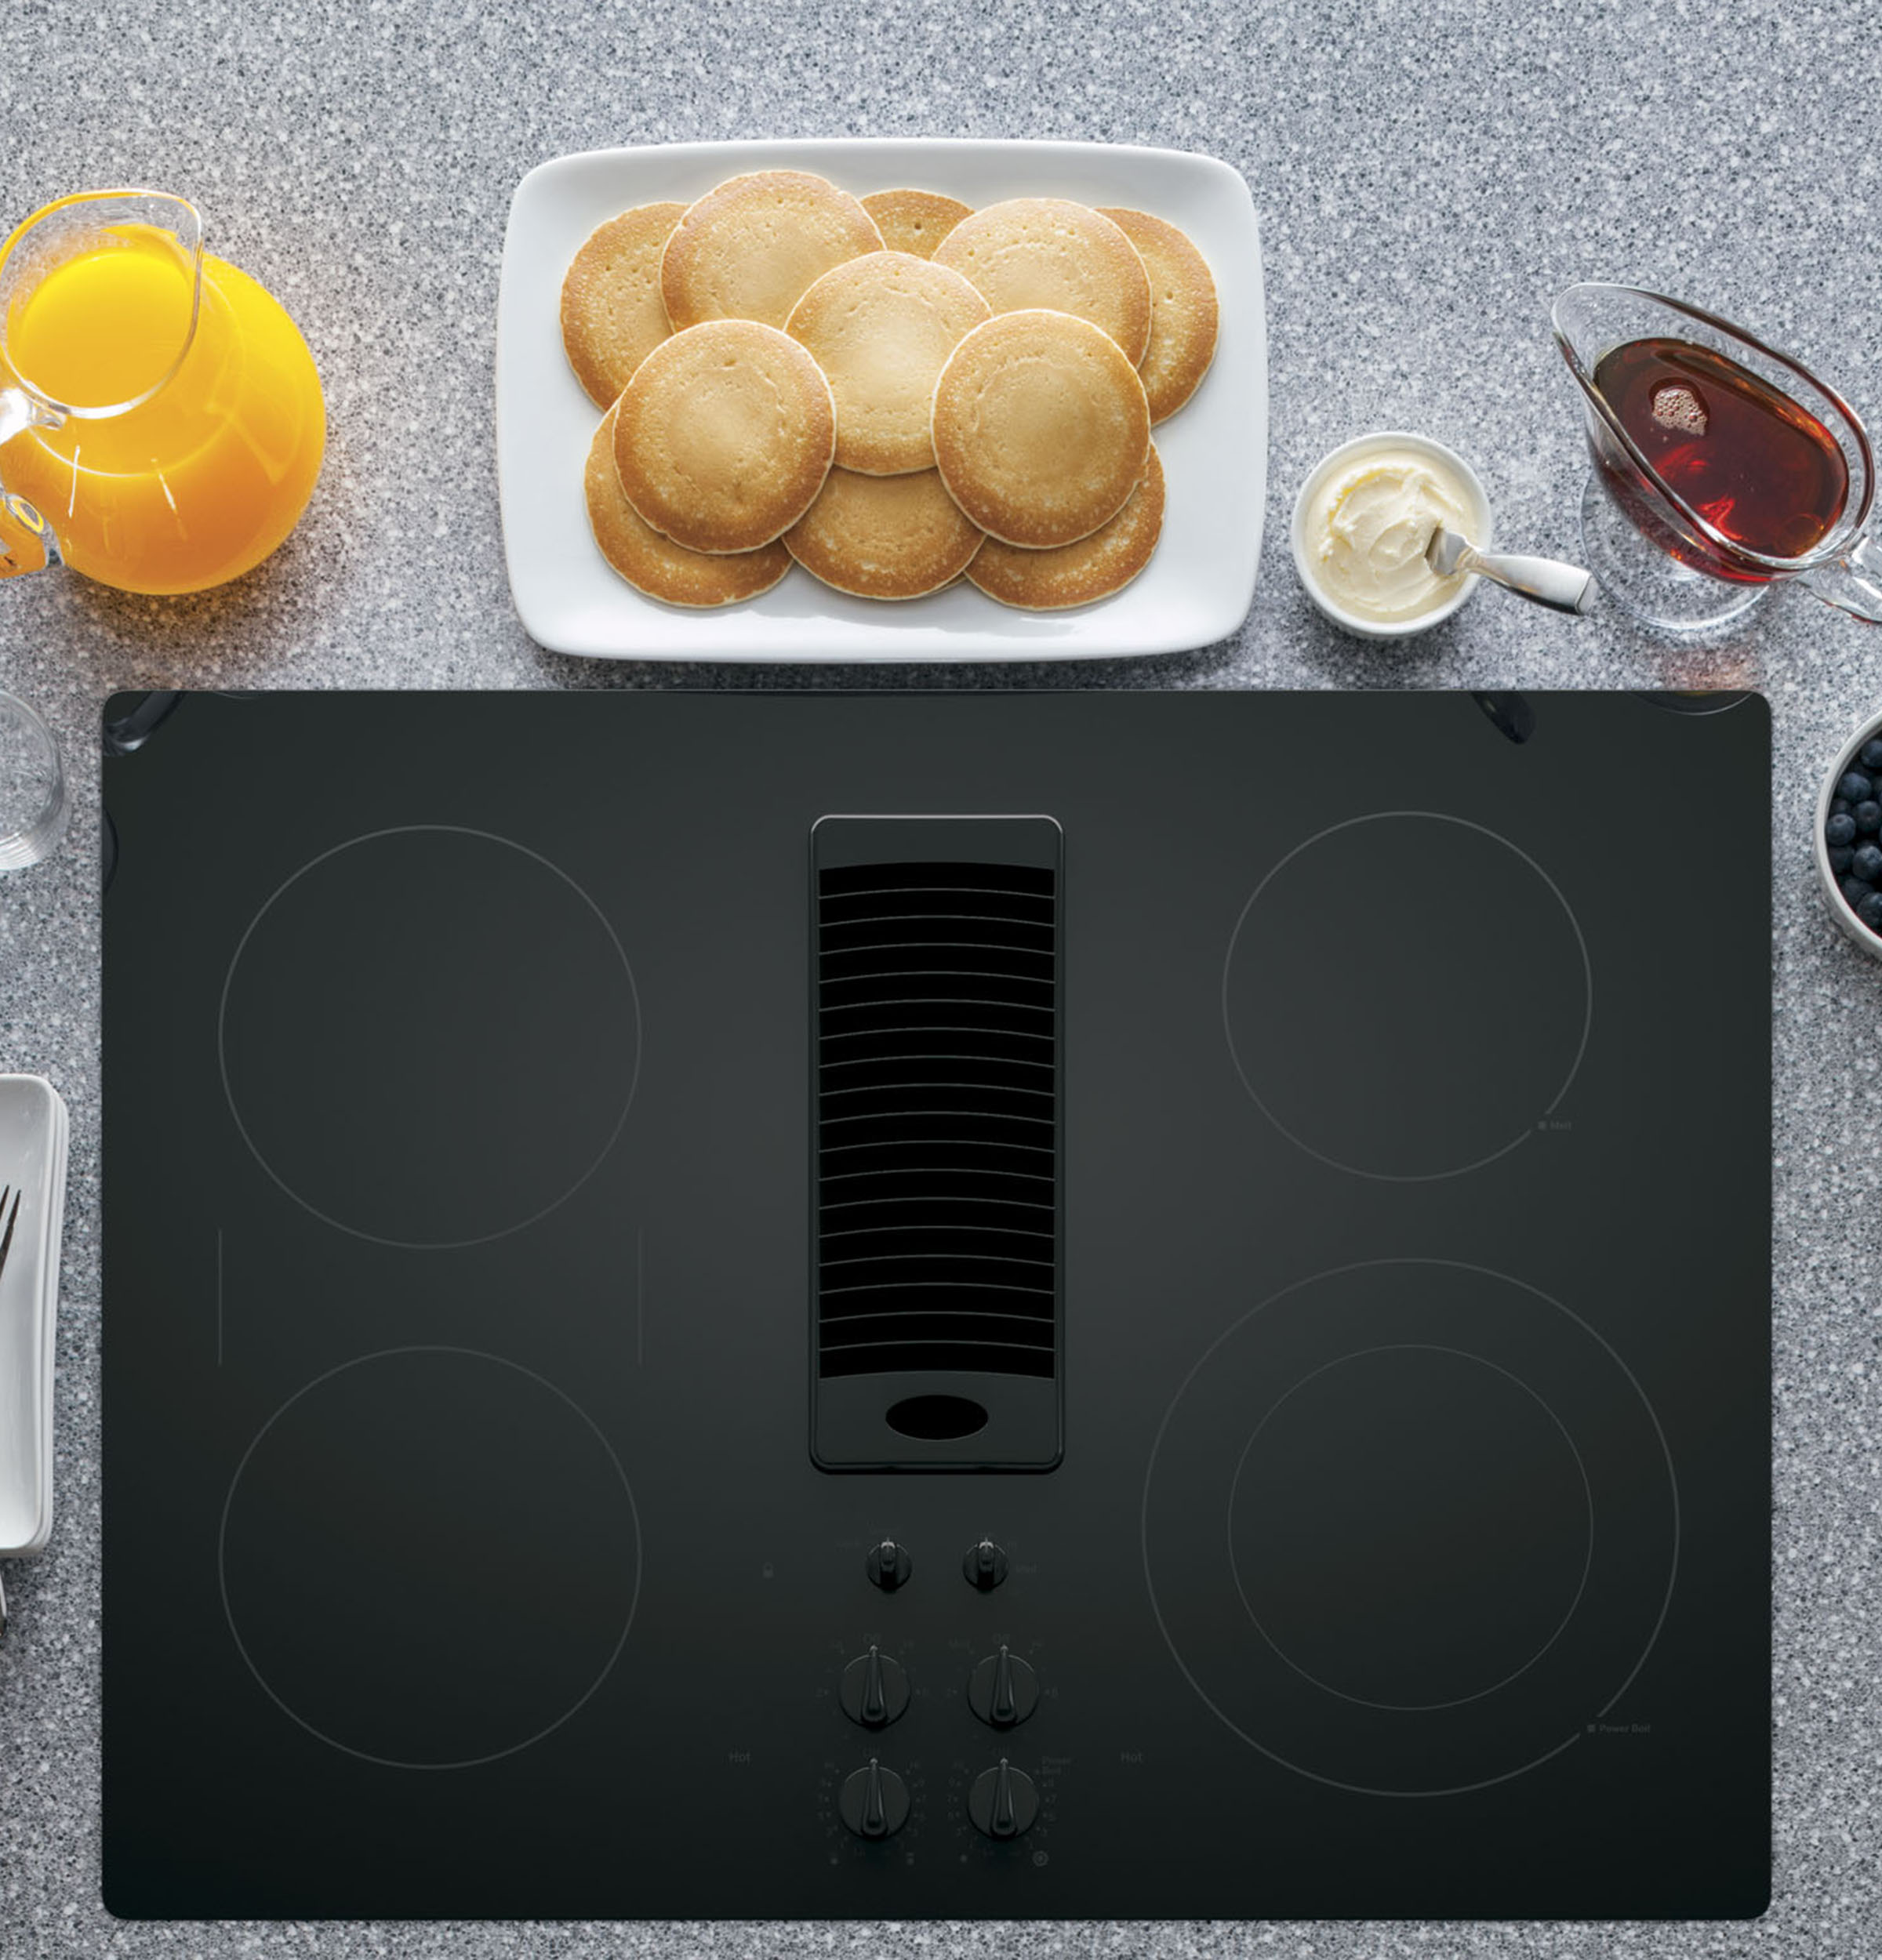 Ge Profile Series 30 Downdraft Electric Cooktop Pp9830djbb Ada